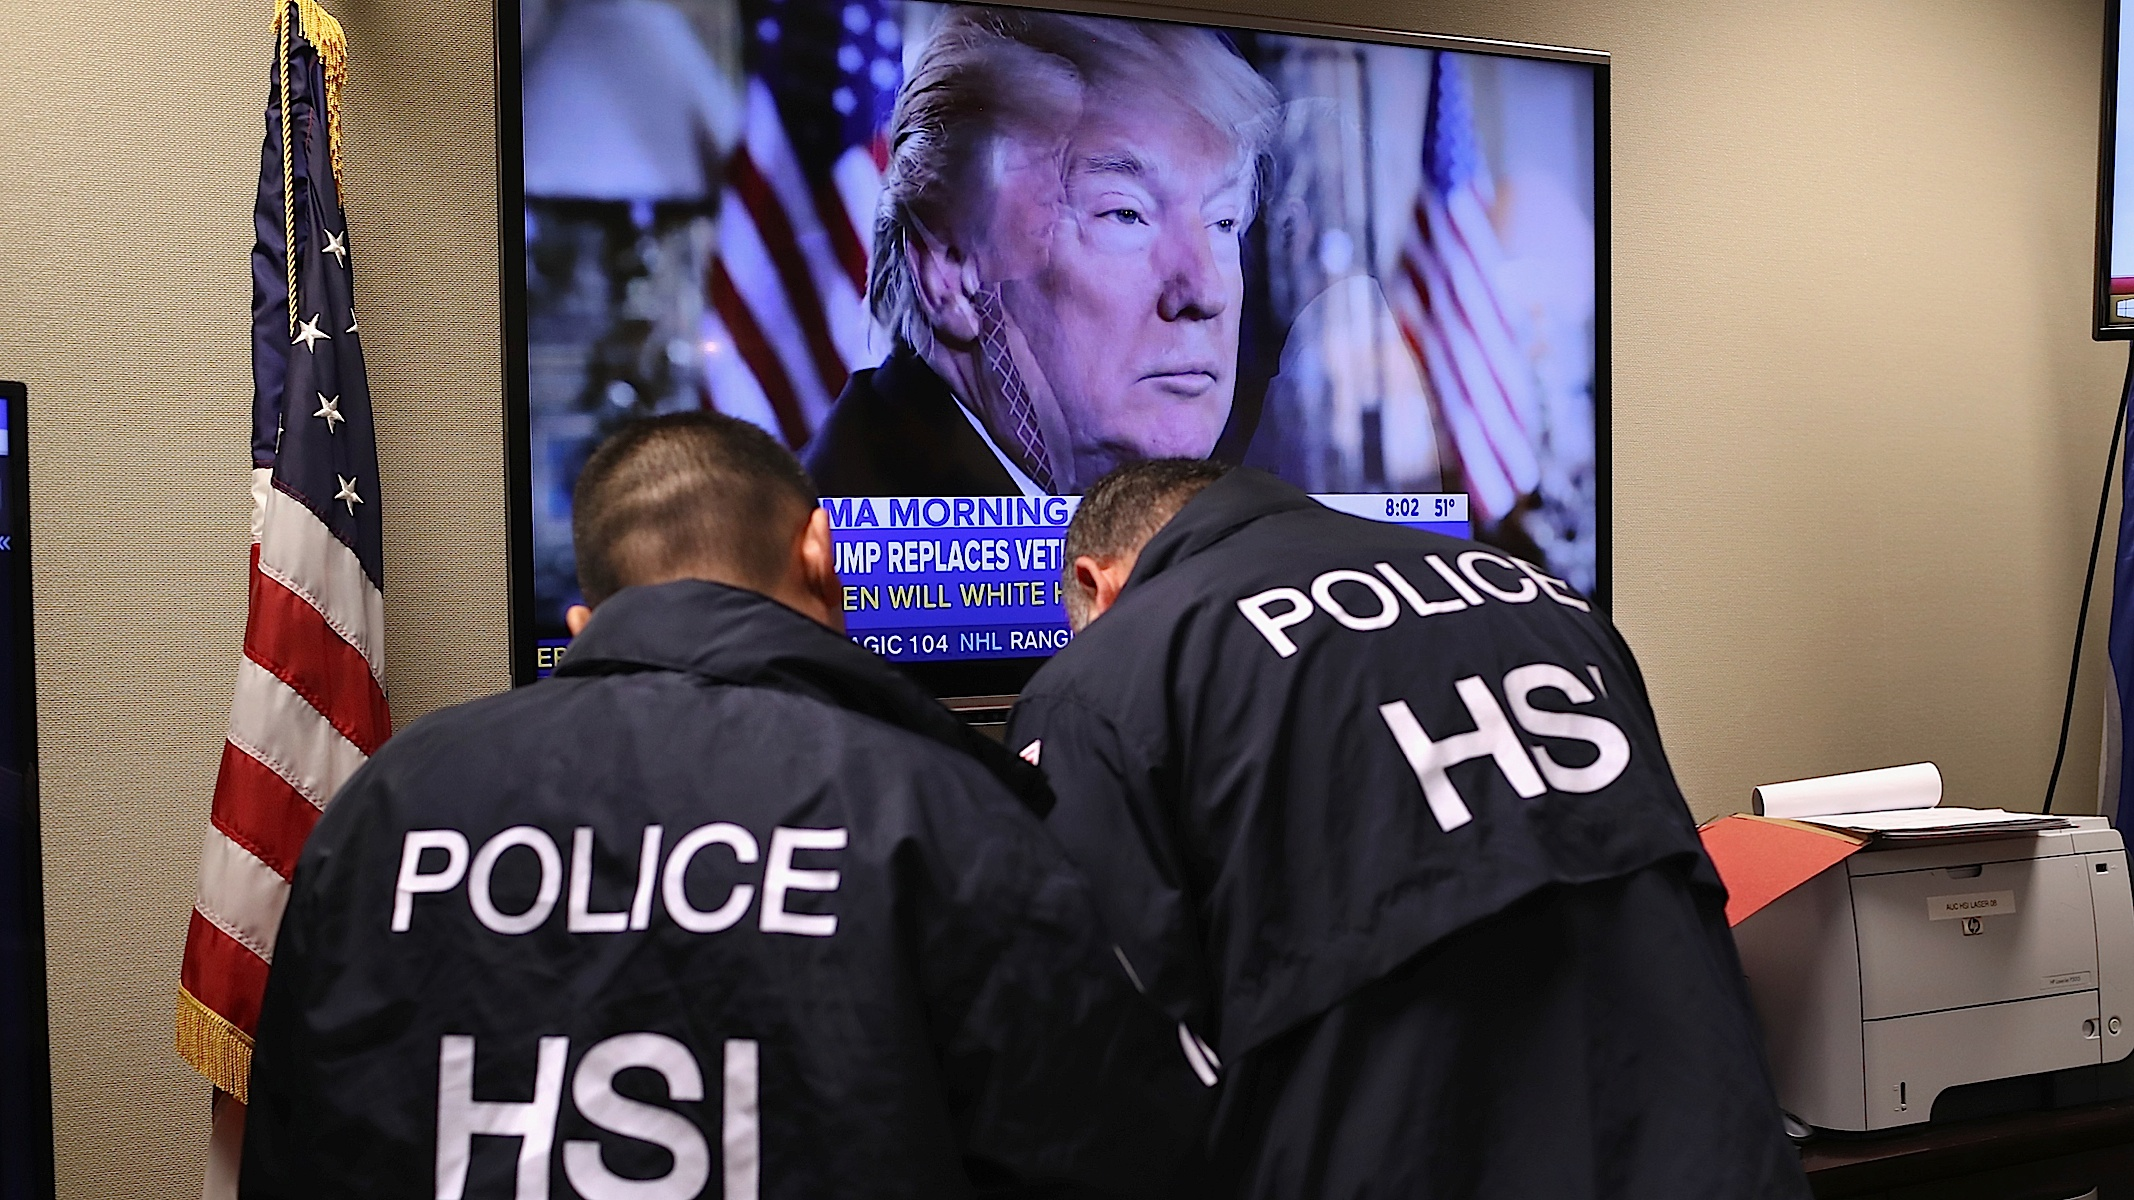 The ICE Raids Are Donald Trump's Saddest, Most Transparent Failure